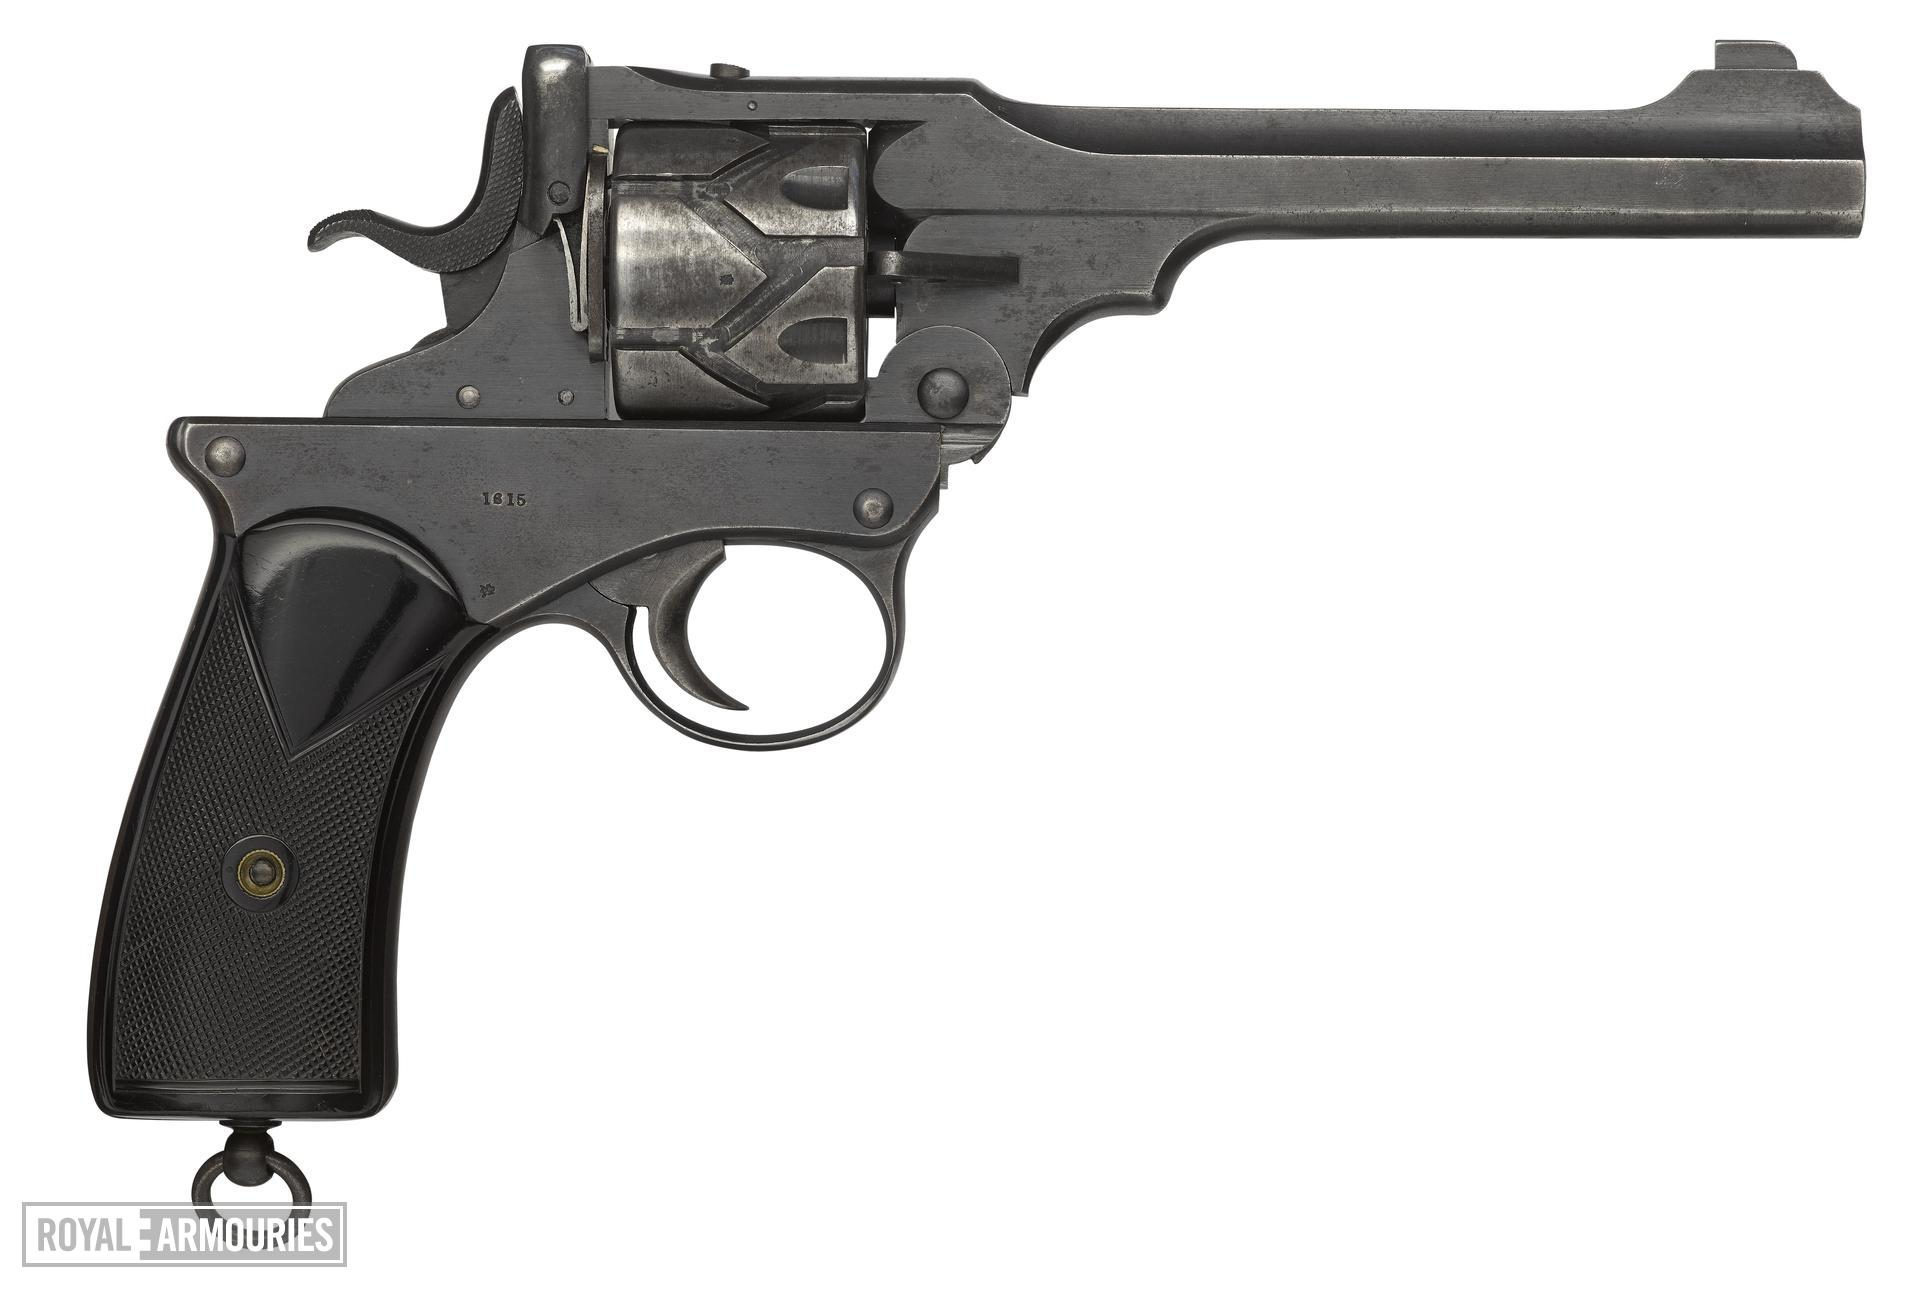 Webley Fosbery Model 1902 centrefire six shot automatic revolver, British, made July 1904. Engraved on the back strap with Viscount Fielding, Coldstream Guards.